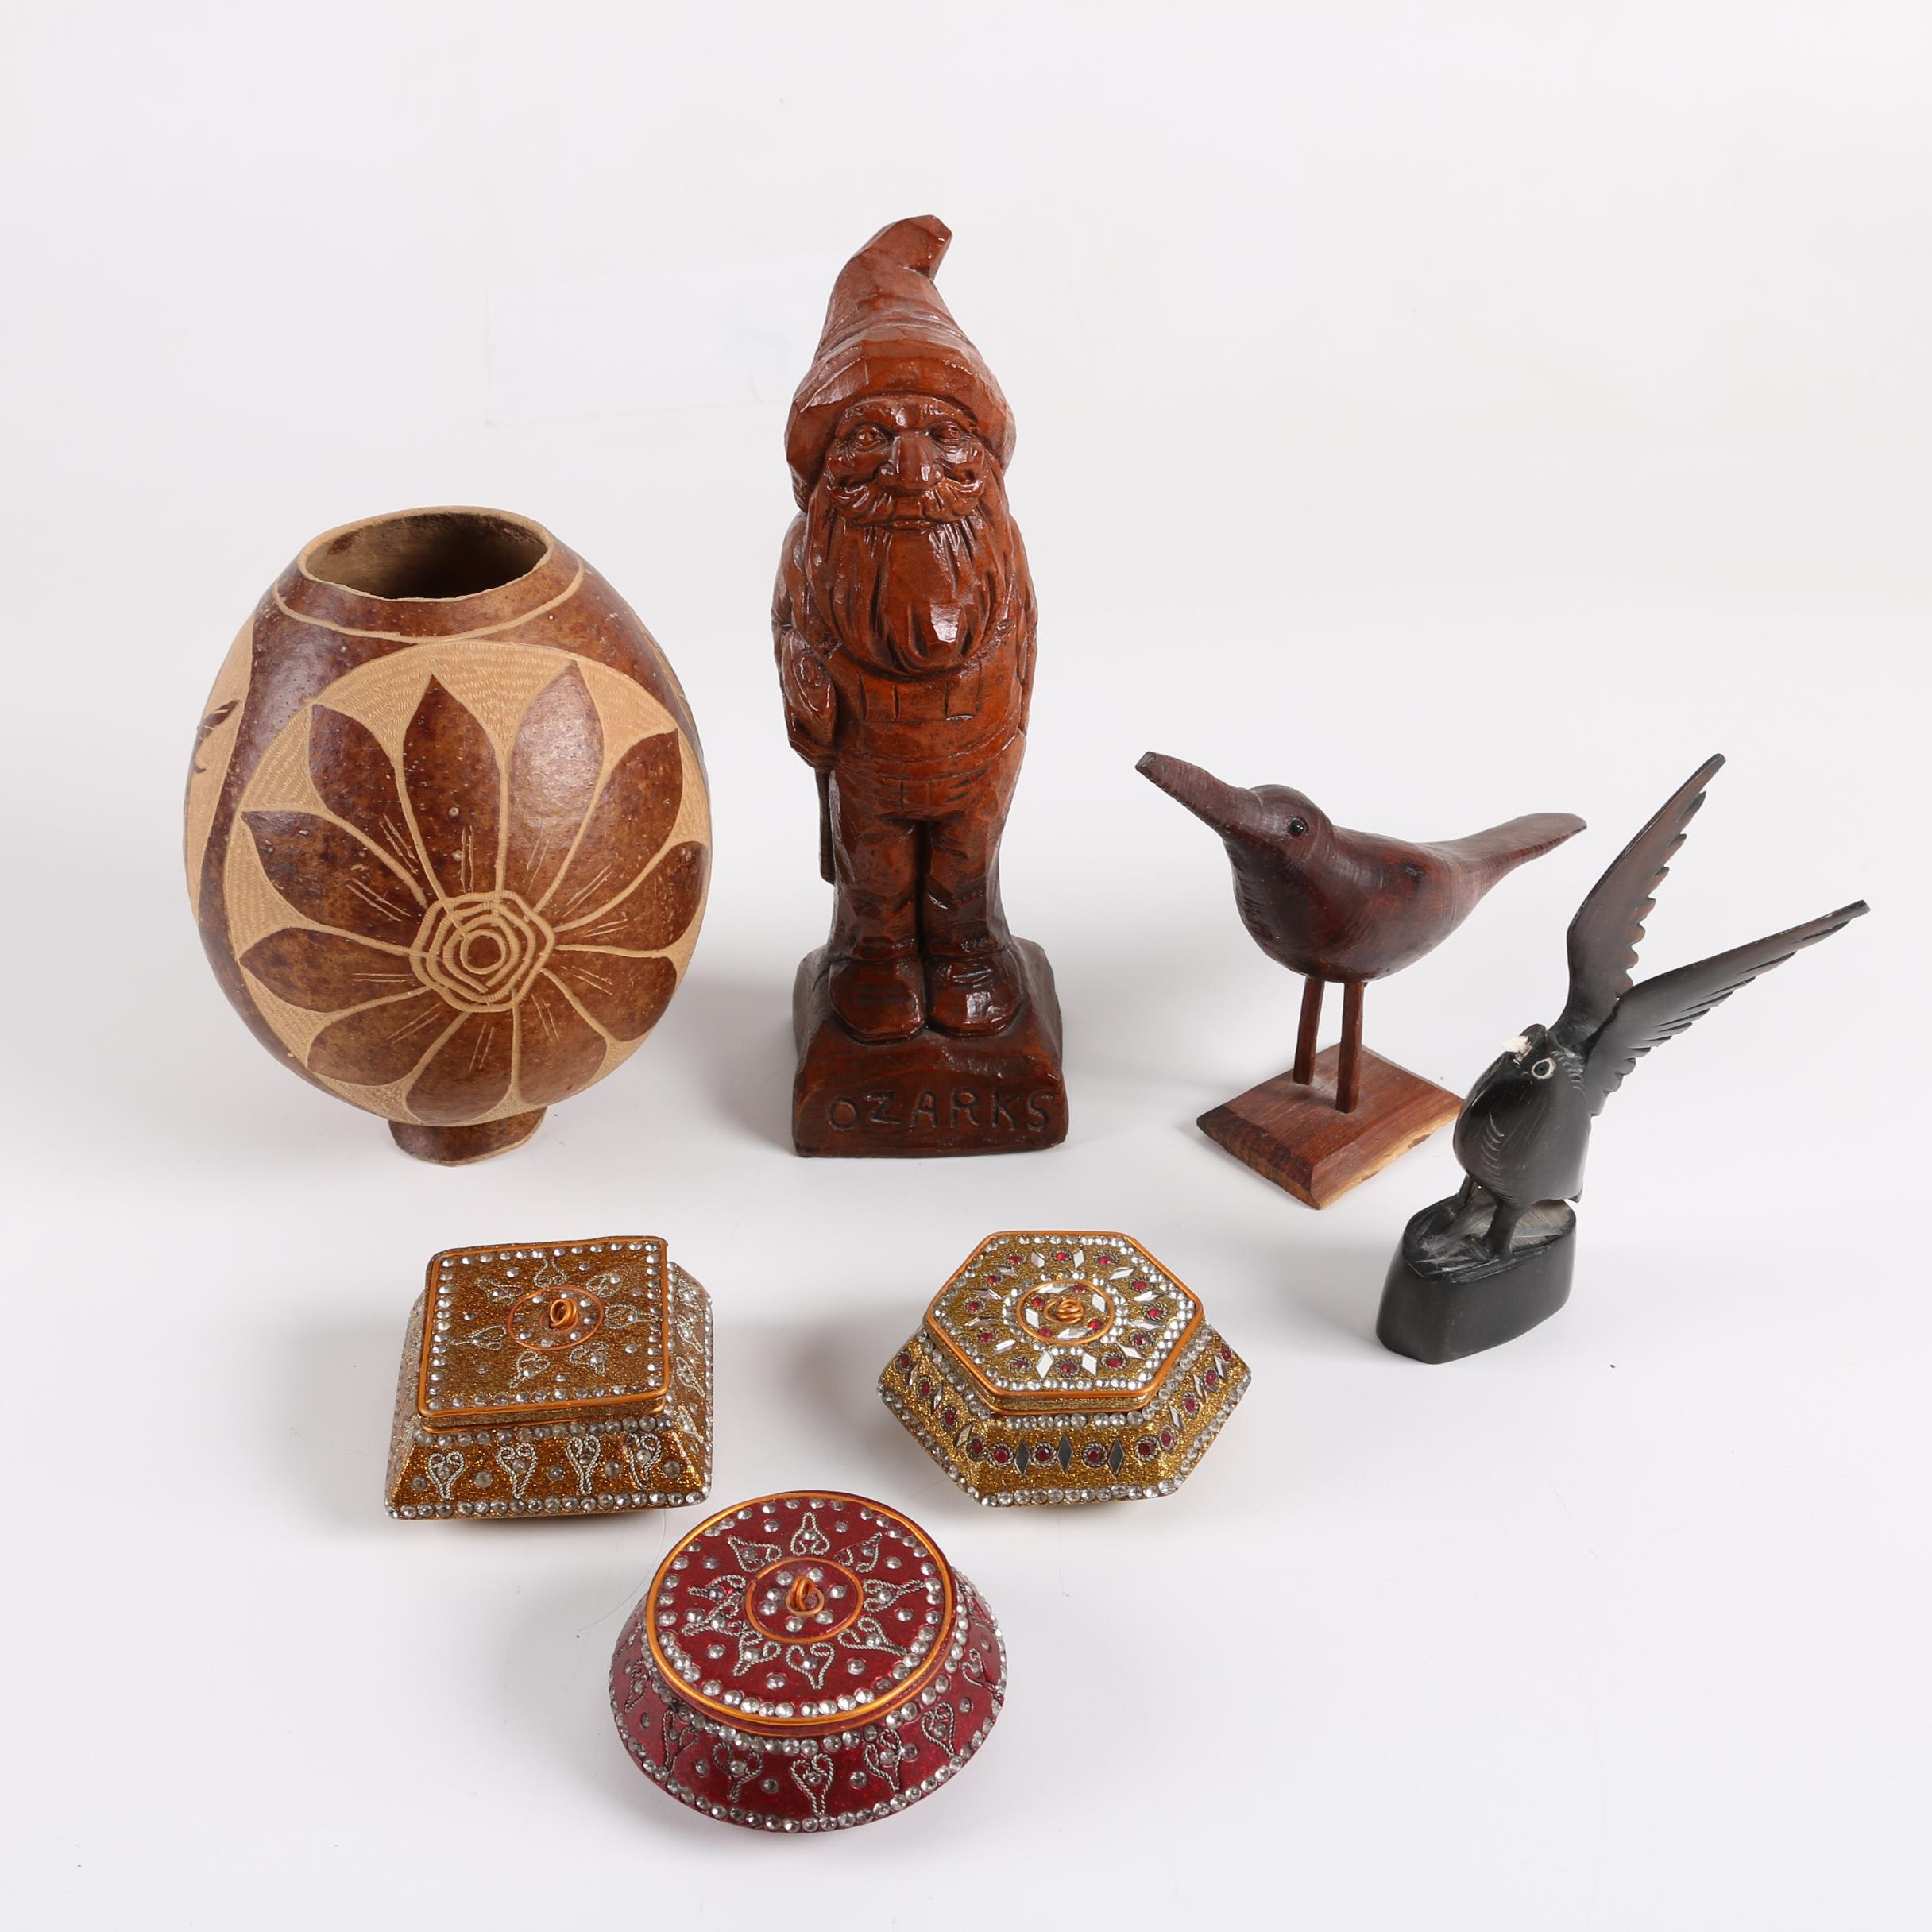 Carved Coconut Shell Vessel, Figurines and Decorative Boxes